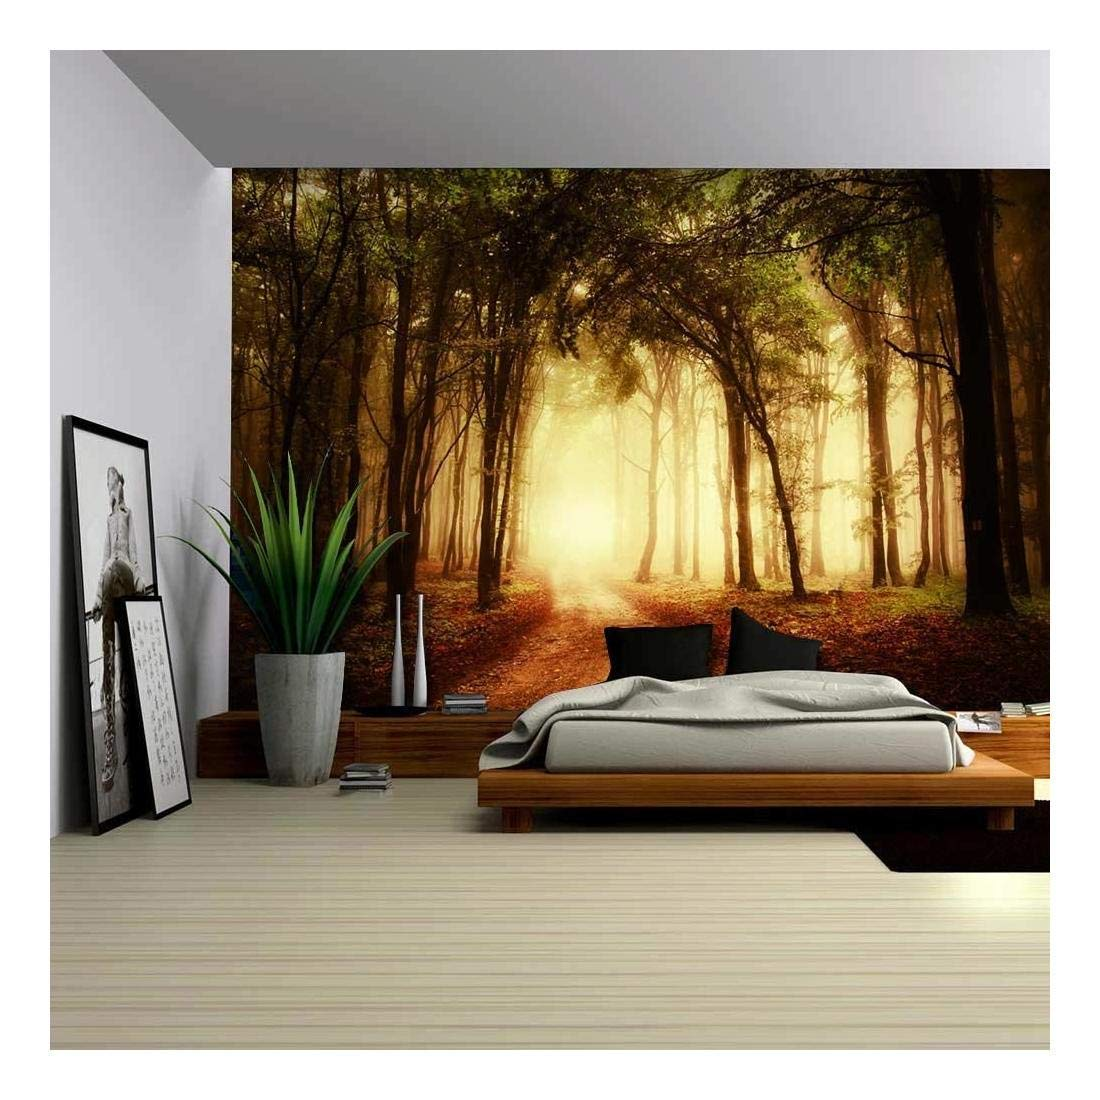 wall26 Pathway in a Forest with an Orange Glow - Wall Mural, Removable Sticker, Home Decor - 100x144 inches